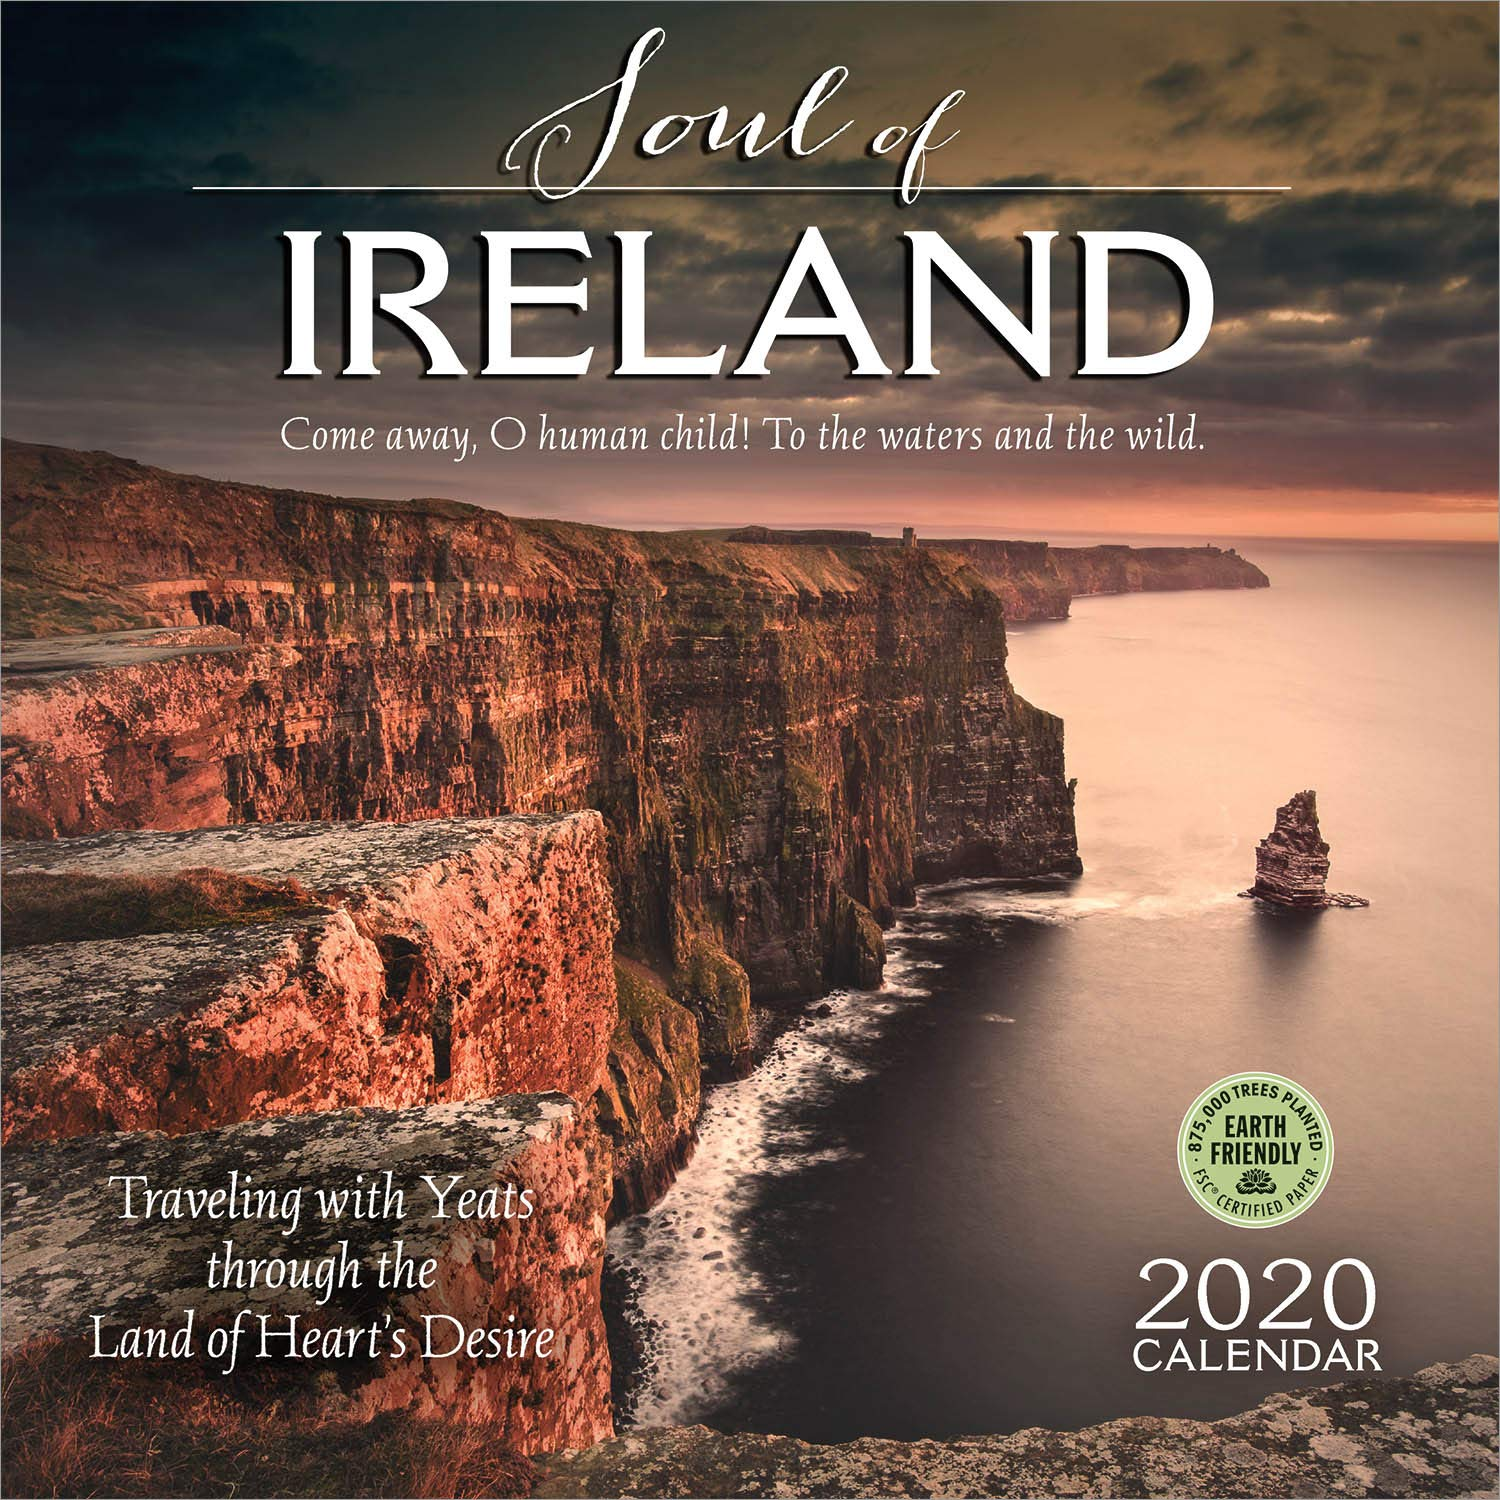 the soul of ireland 2020 wall calendar traveling with yeats through the land of hearts desire